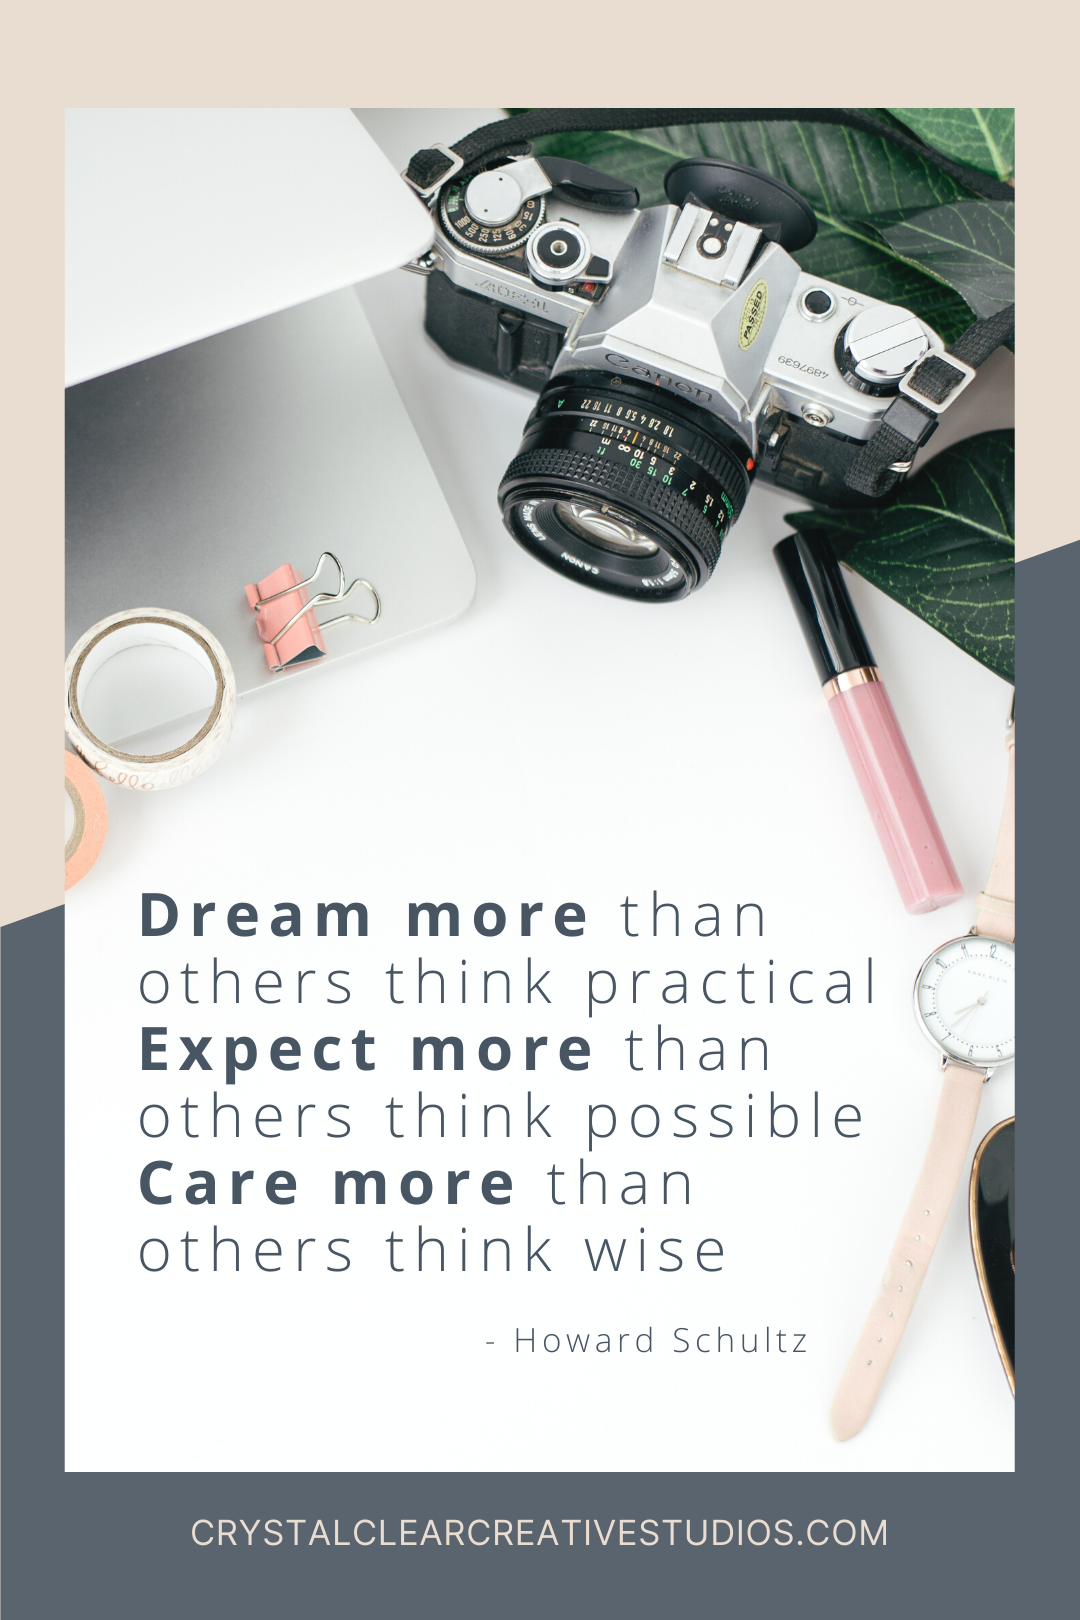 Dream more than others think practical. Expect more than others think possible. Care more than others think wise.